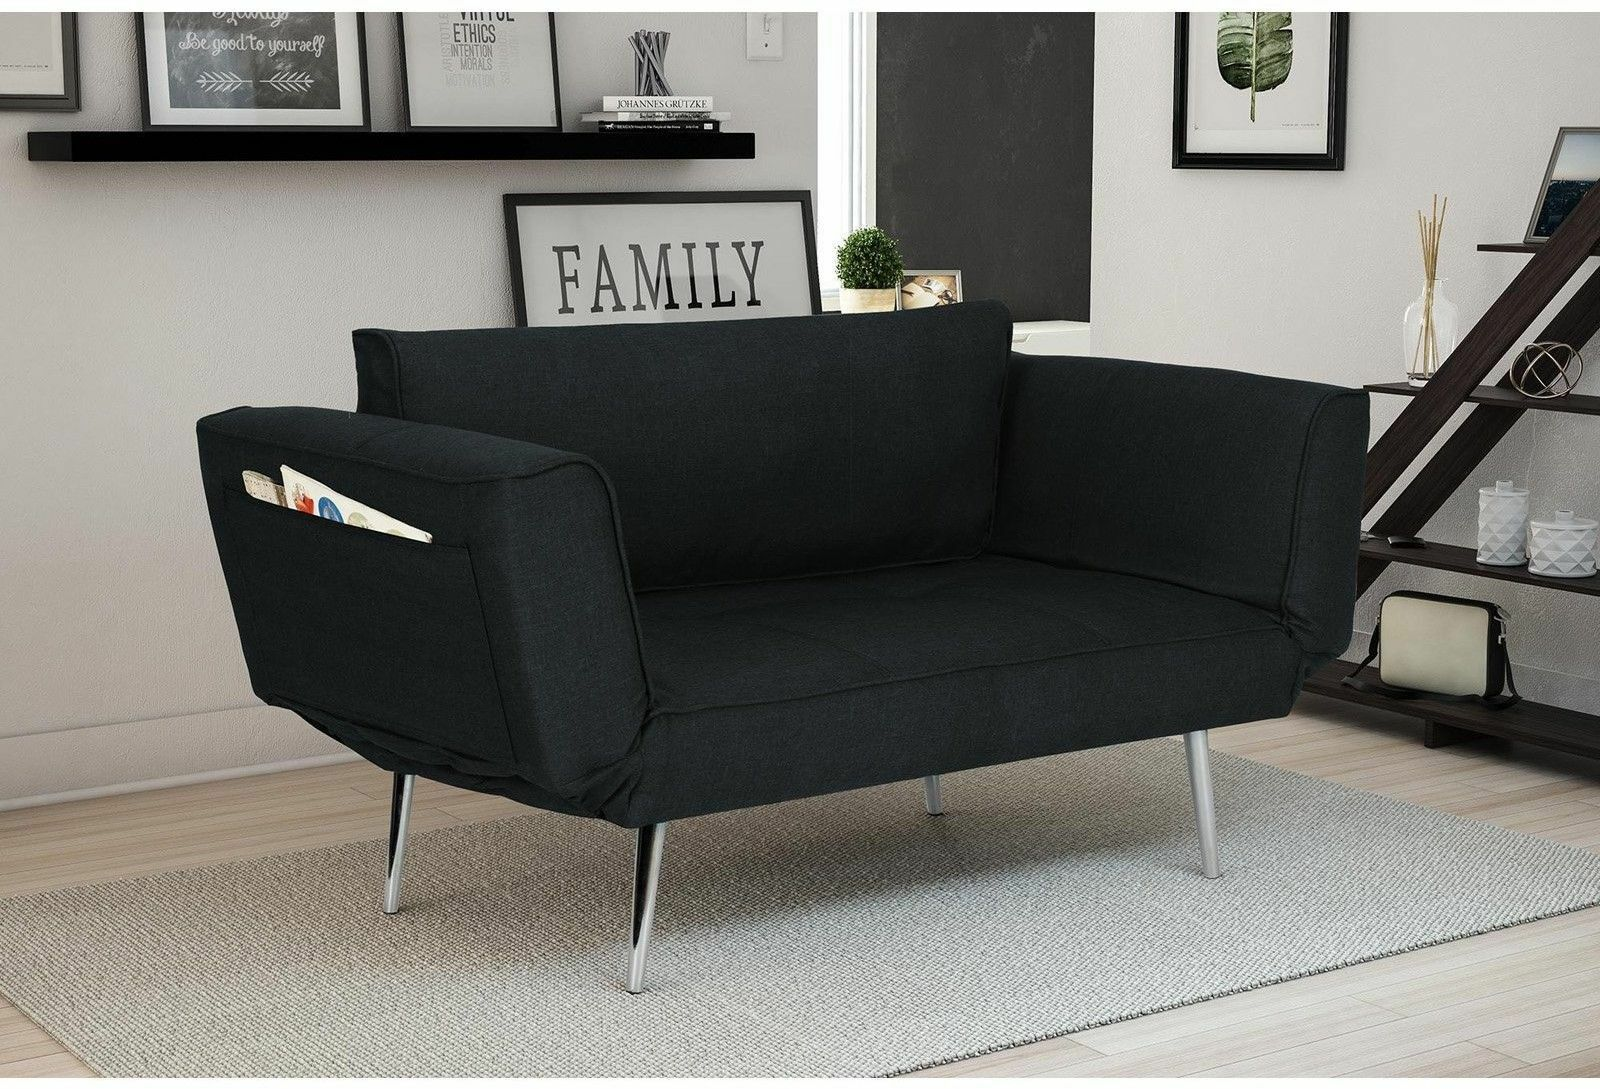 Details about Futon Sofa Bed Sleeper Convertible Loveseat Couch Chair Black  Home Office Guest